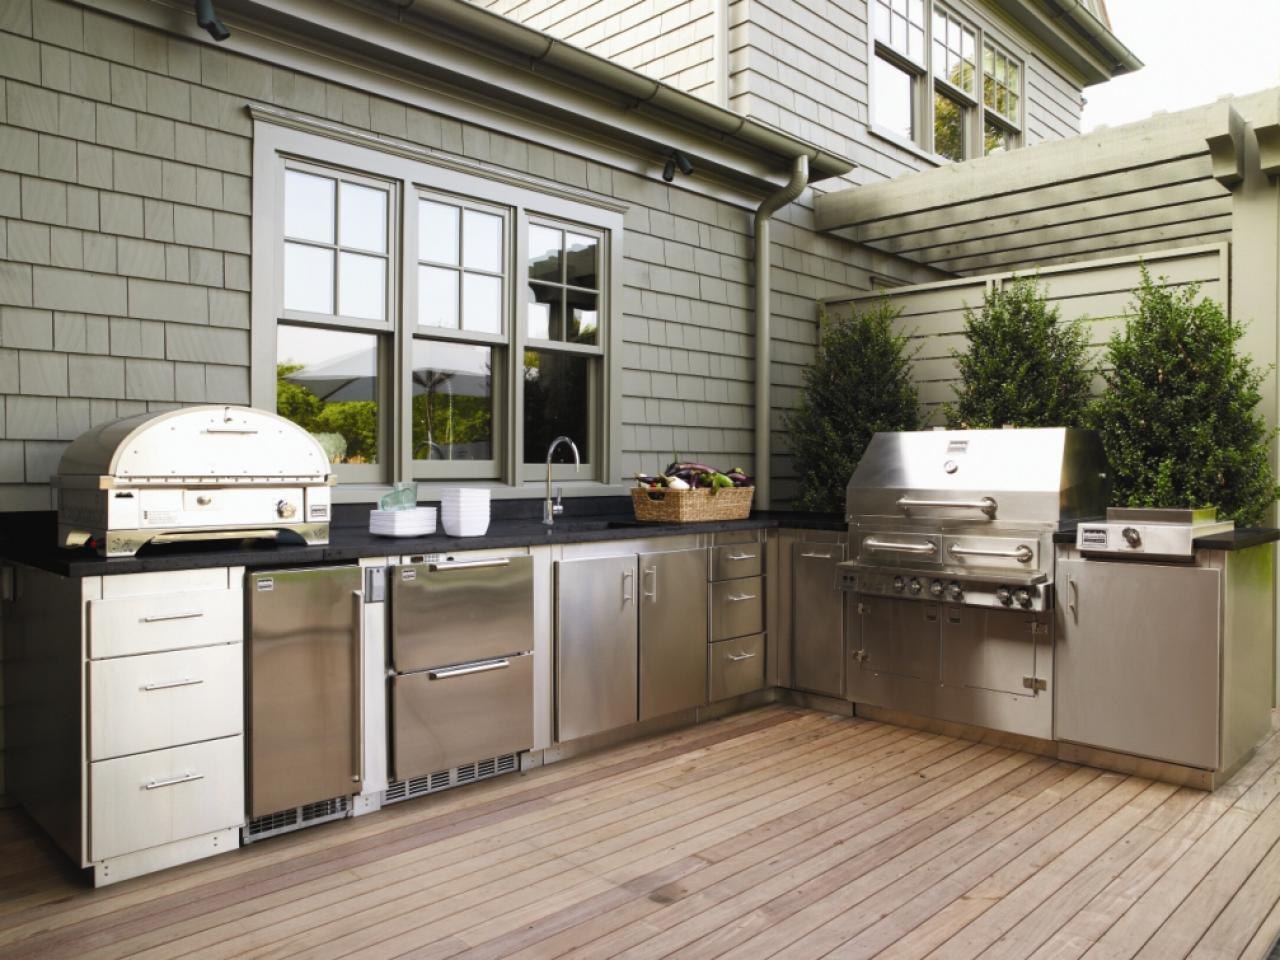 Image of: Outdoor Stainless Steel Kitchen Cabinets